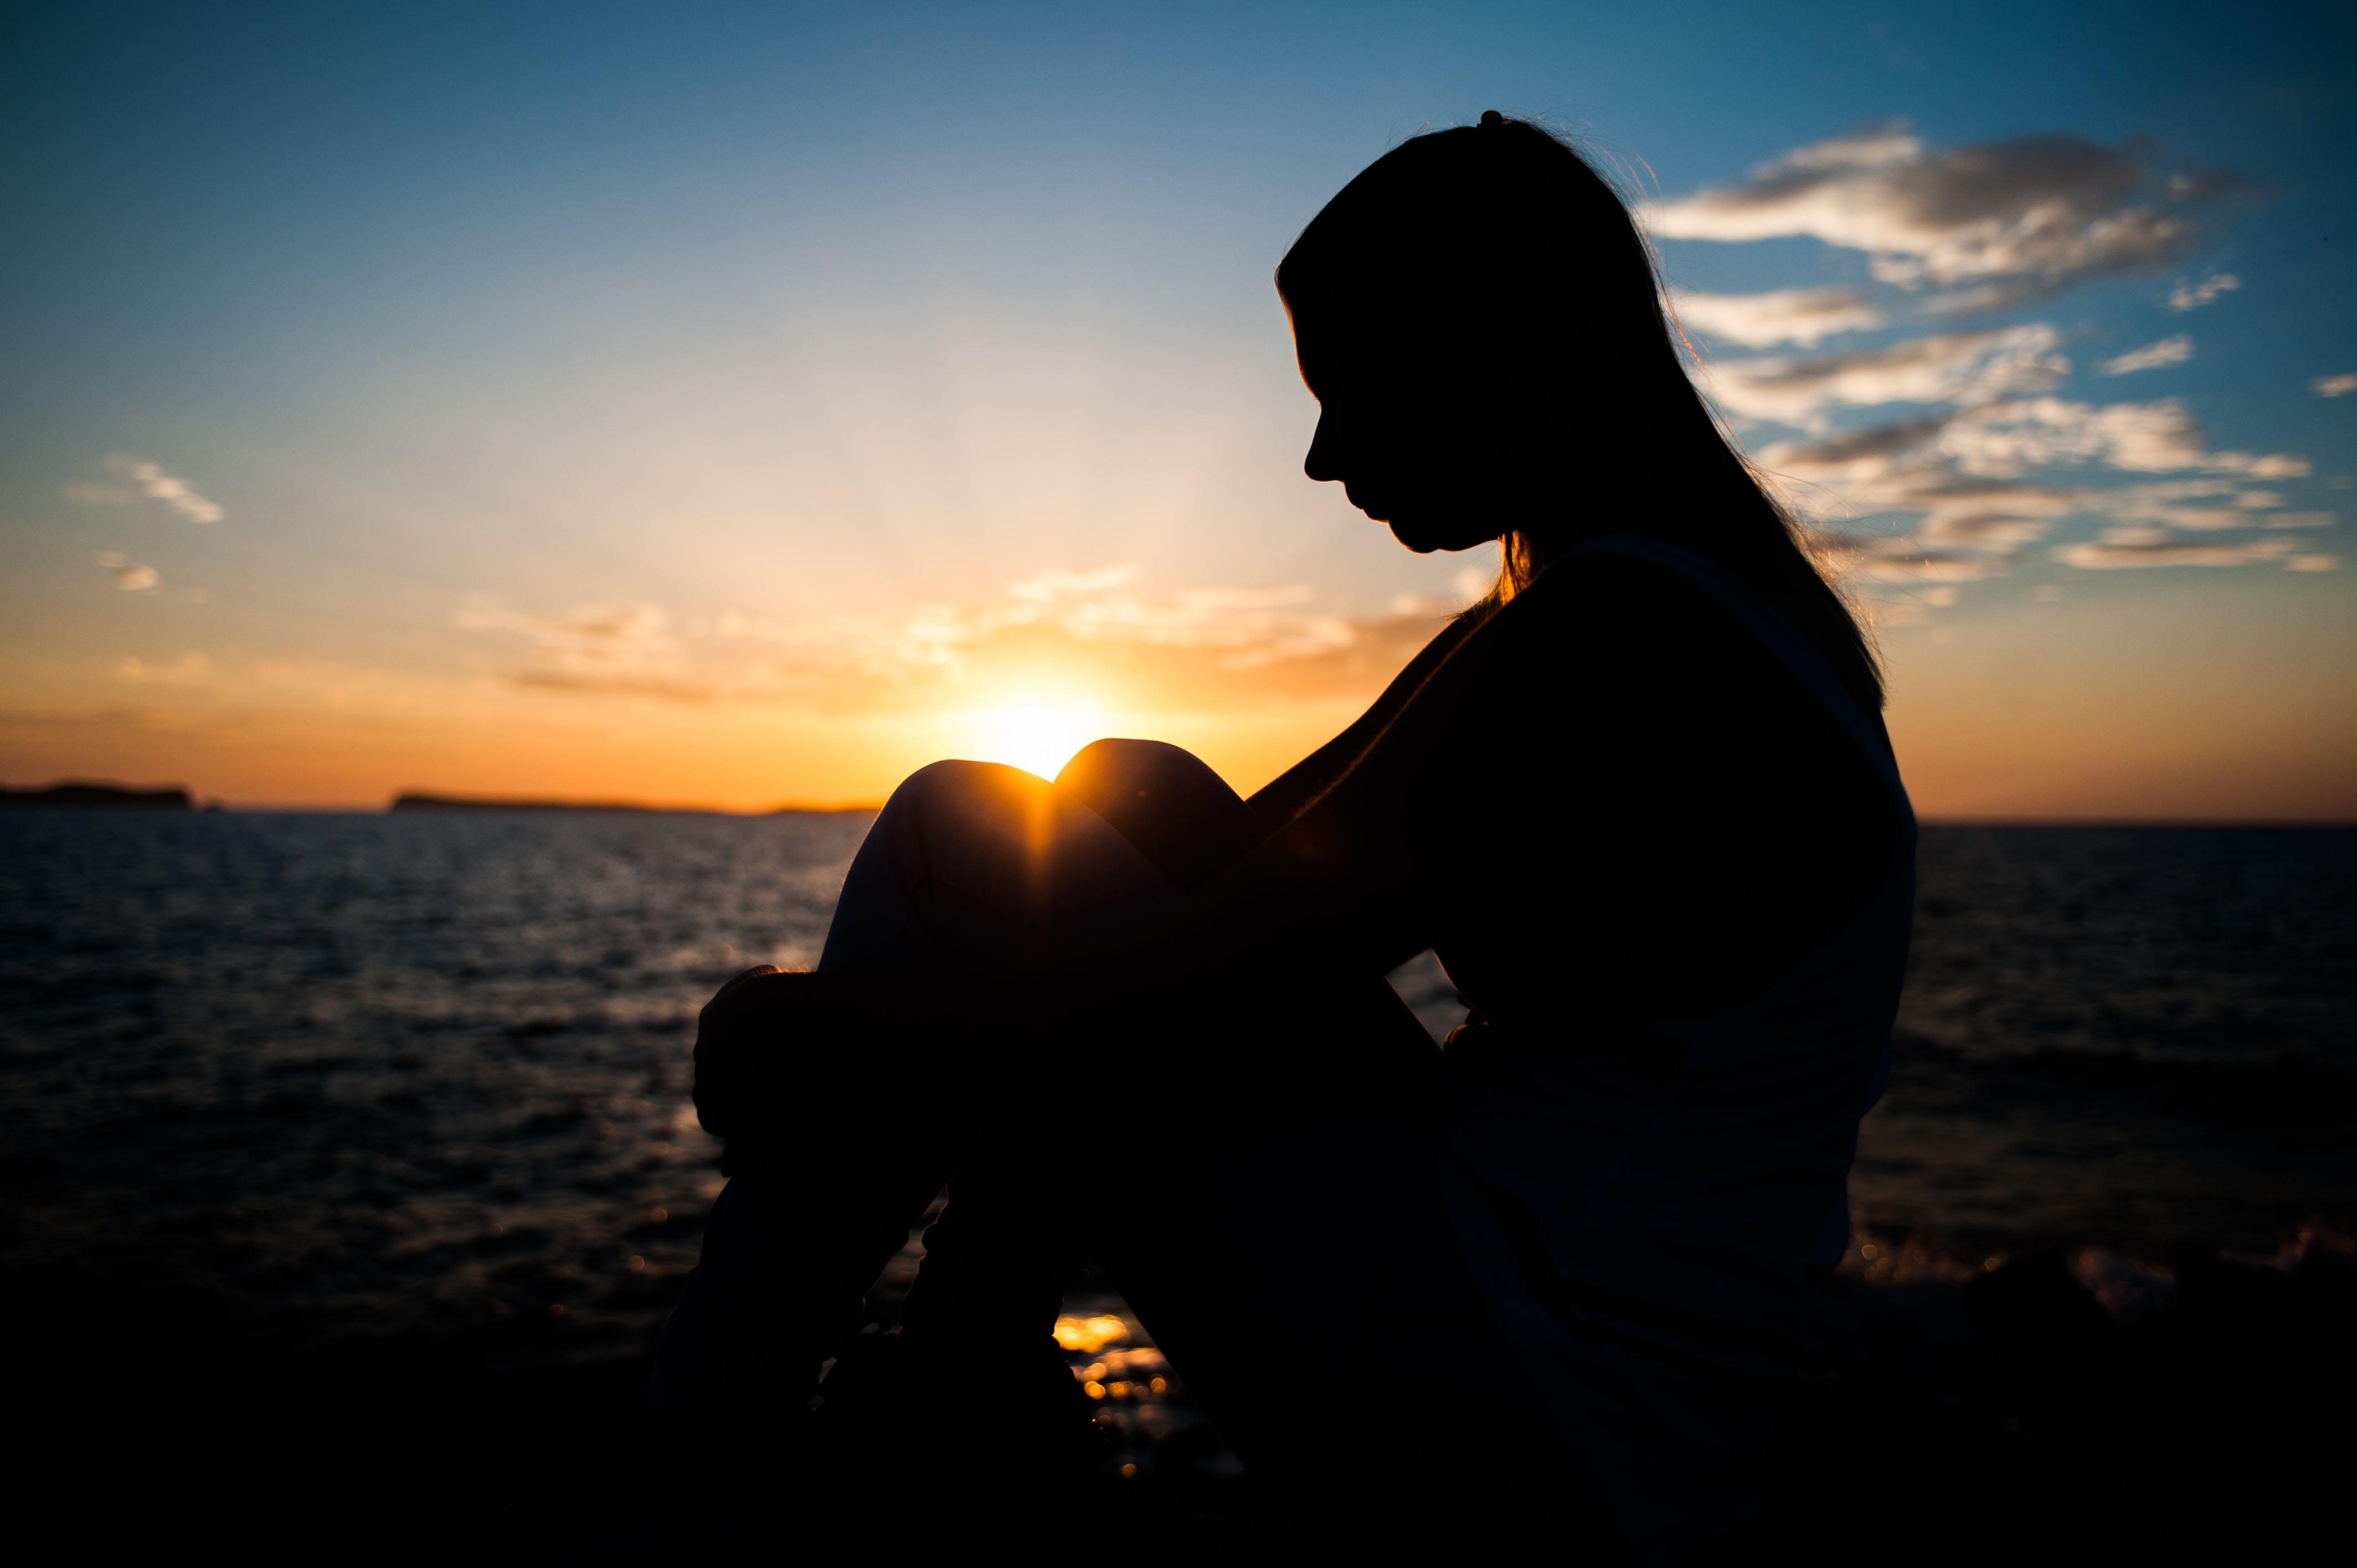 Silhouette of Person Sitting Outdoors